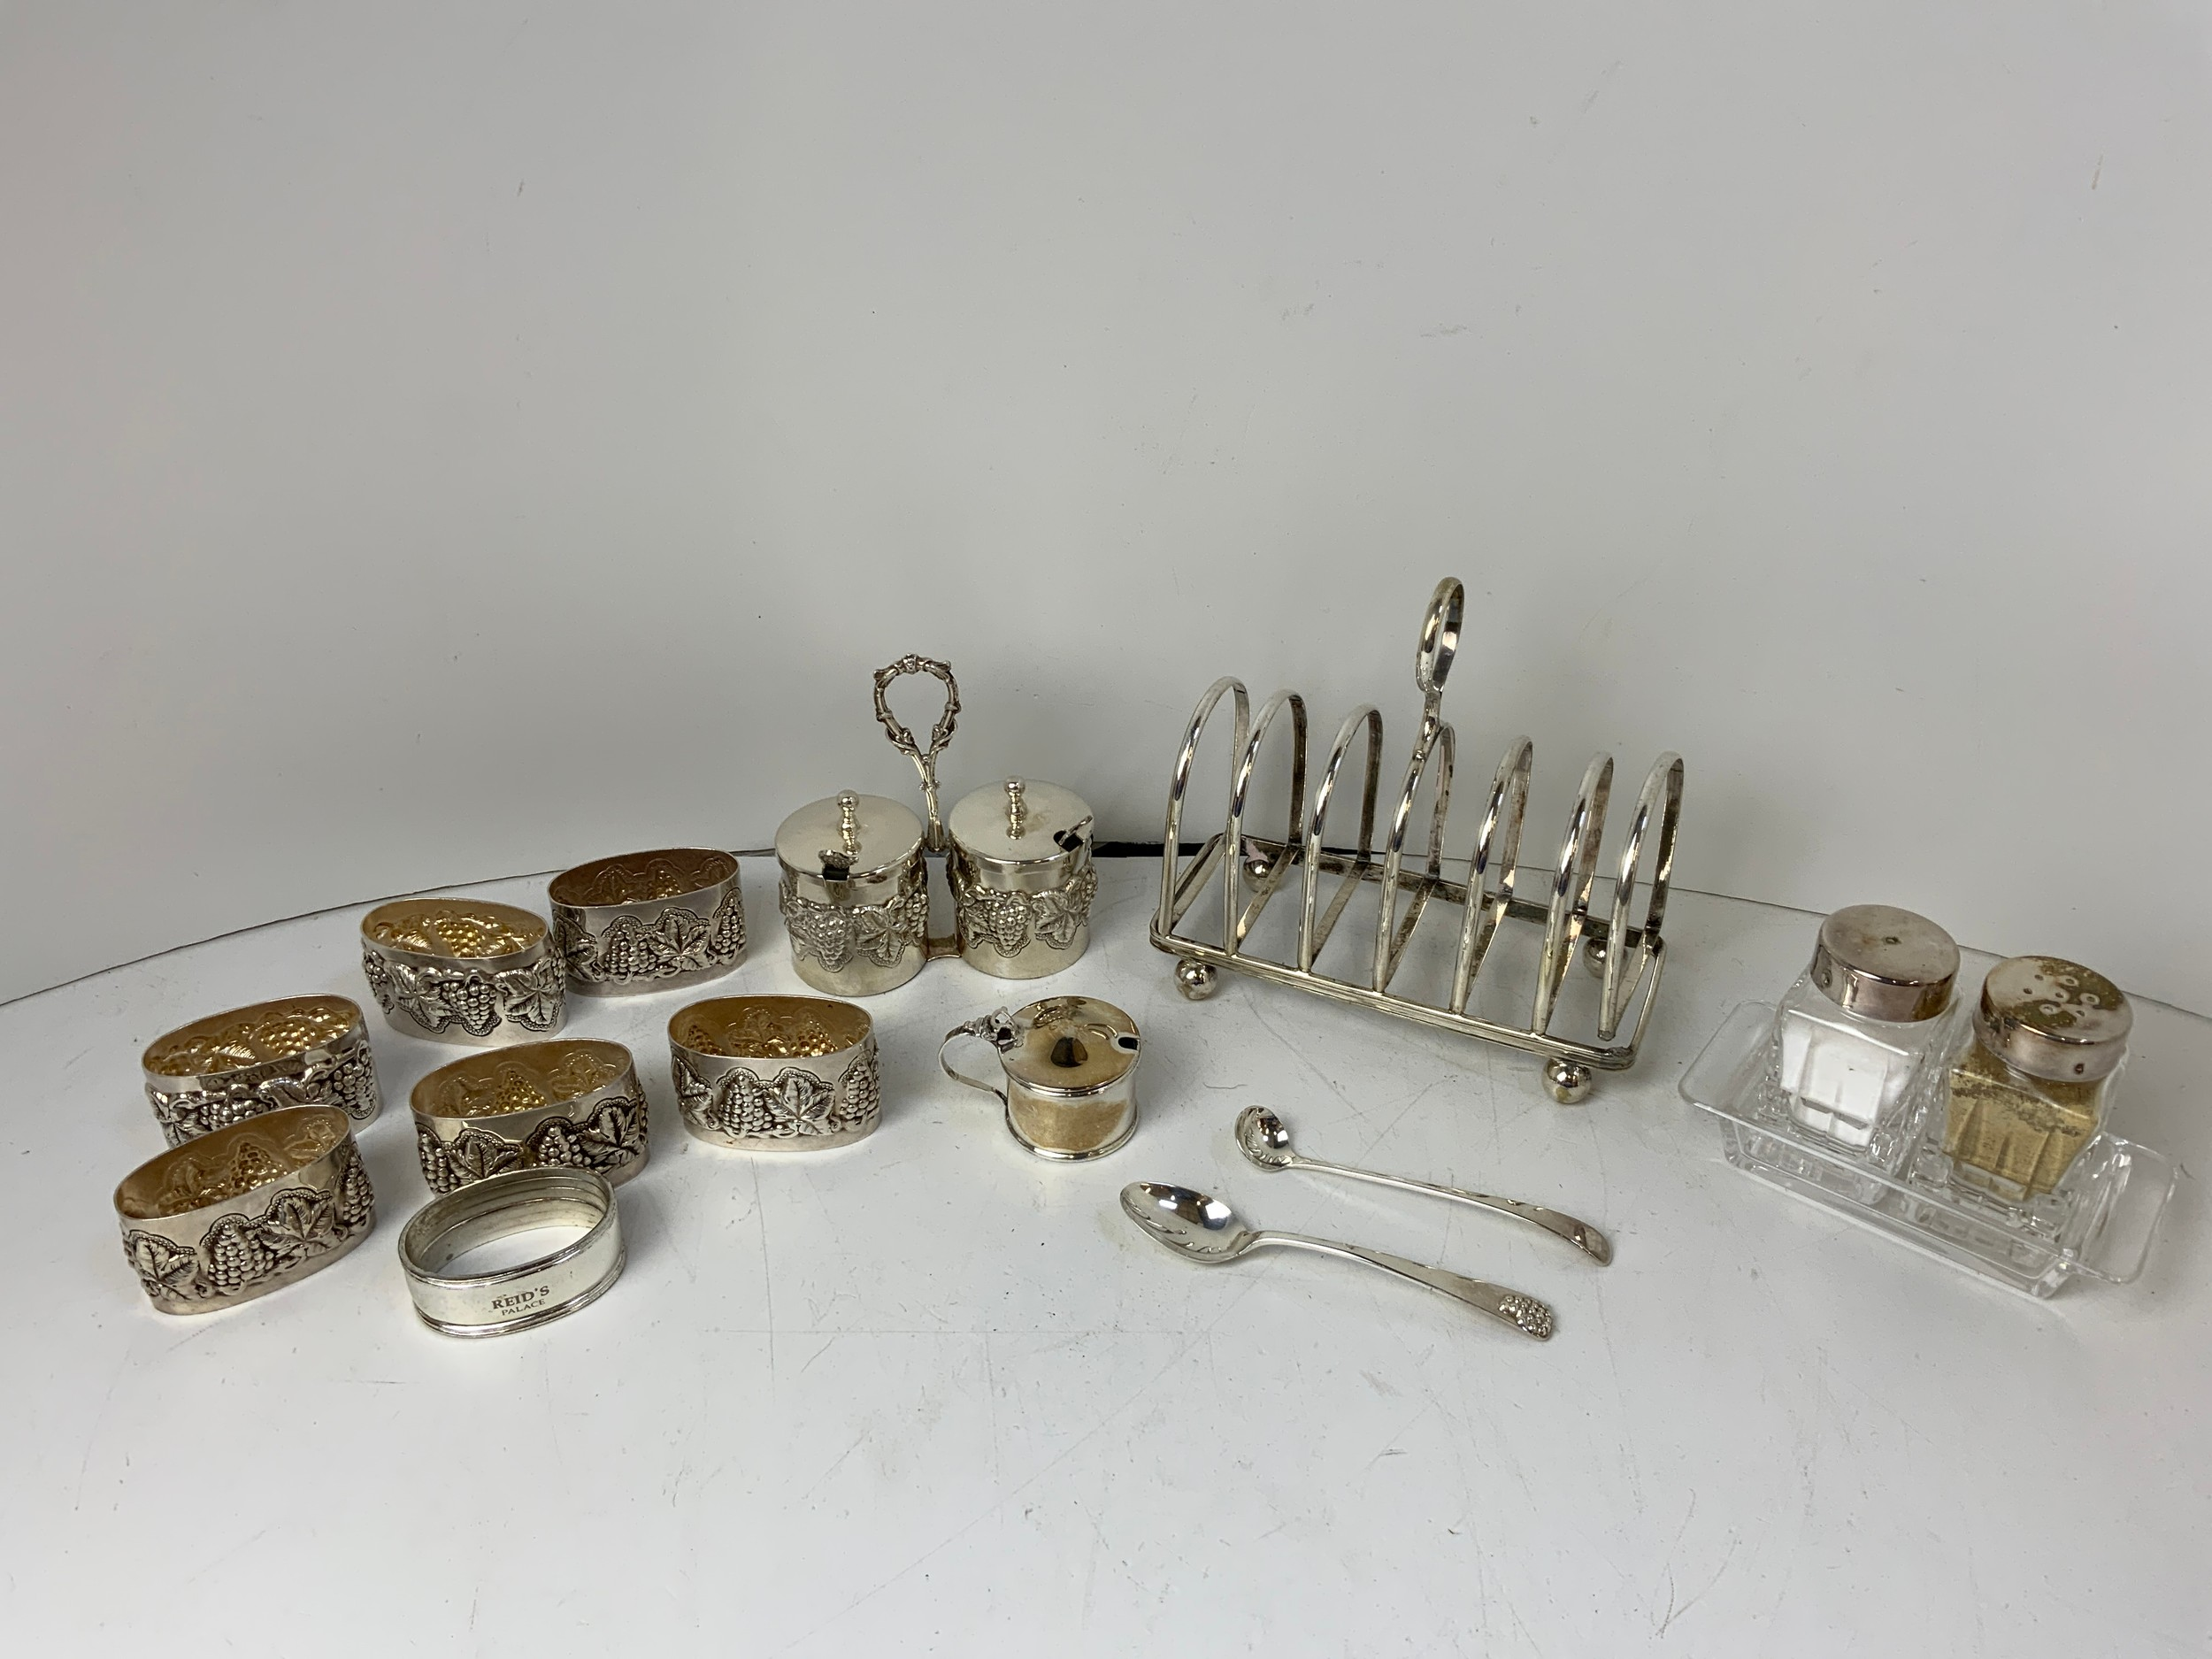 Silver Plated Napkin Rings, Toast Rack and Condiment Sets etc